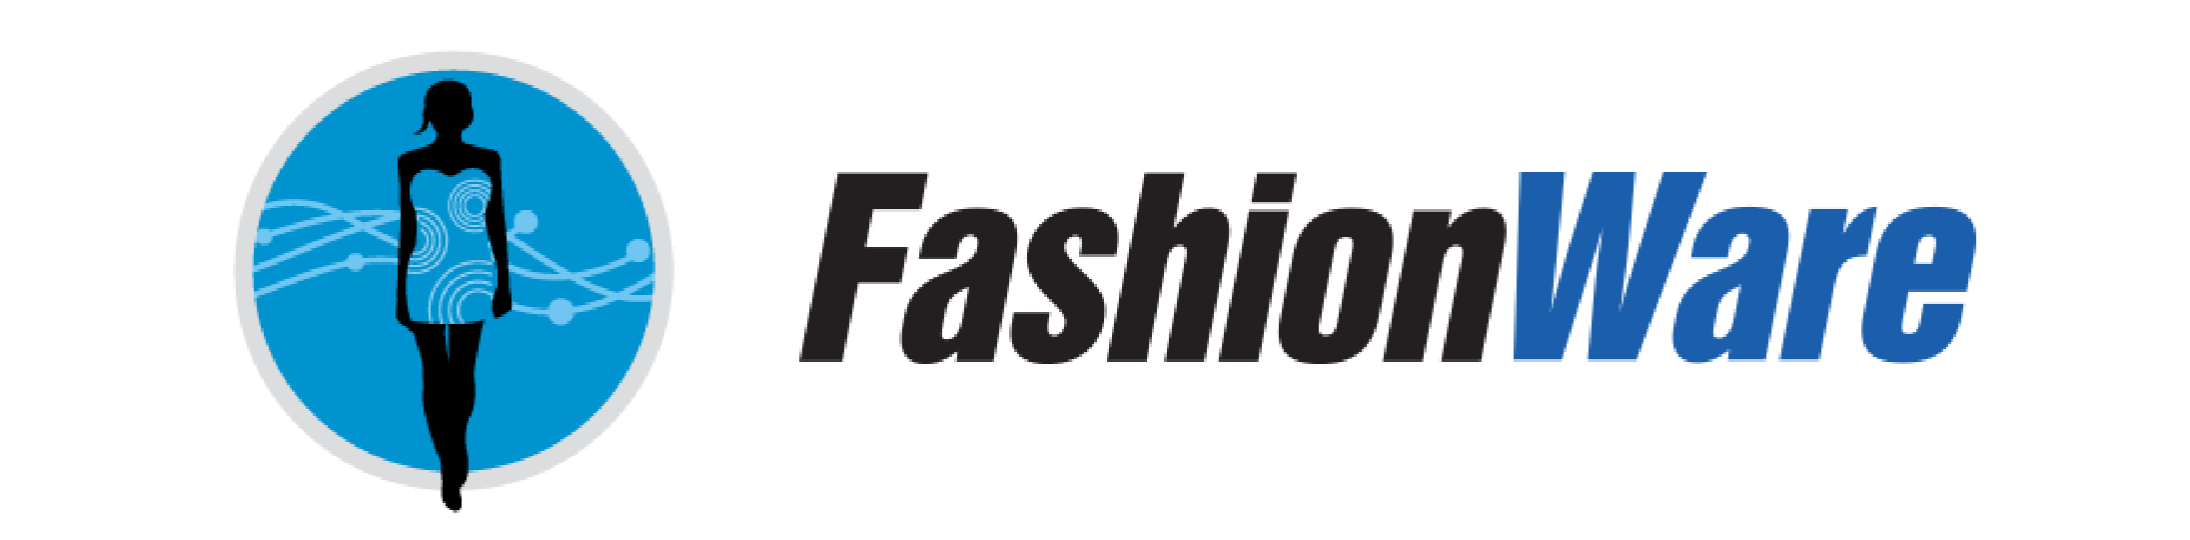 fashion, fashionware,ces,las vegas, red valley media group, living in digital times, magic fashion show events, live events, runway, editorial, video production